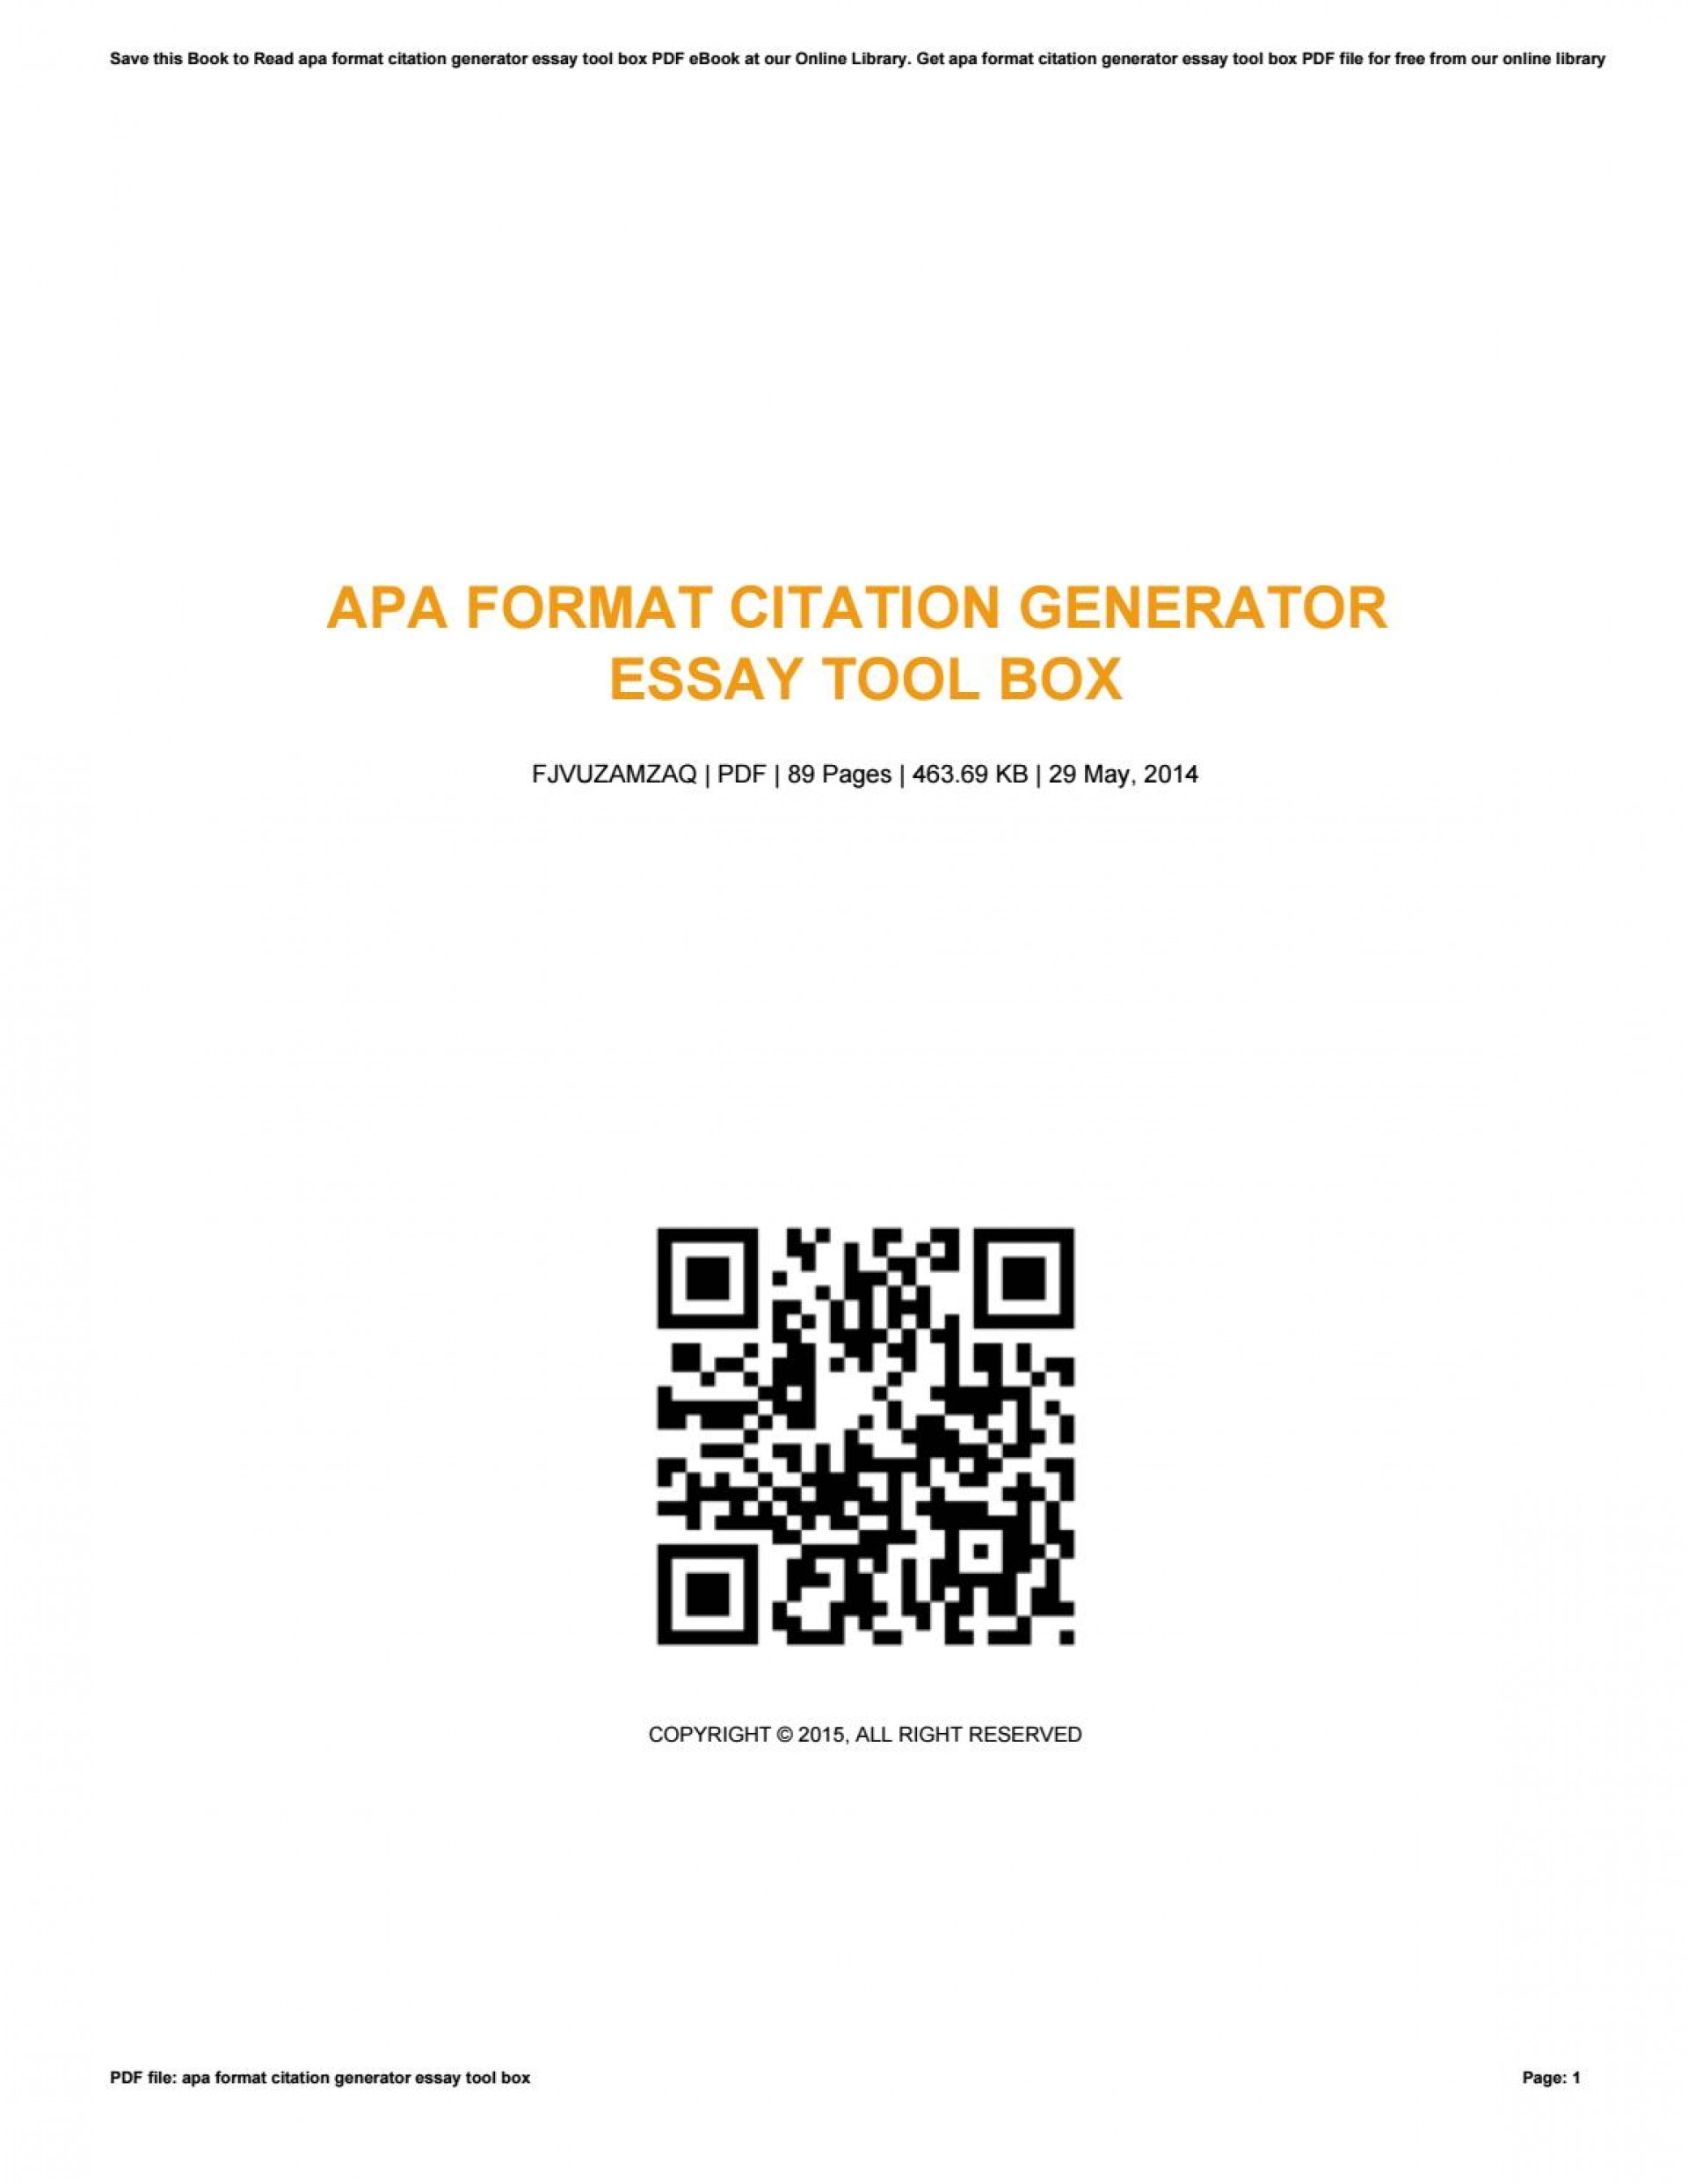 014 Research Paper Apa Citation Machine Page 1 Awful Generator Format 1920